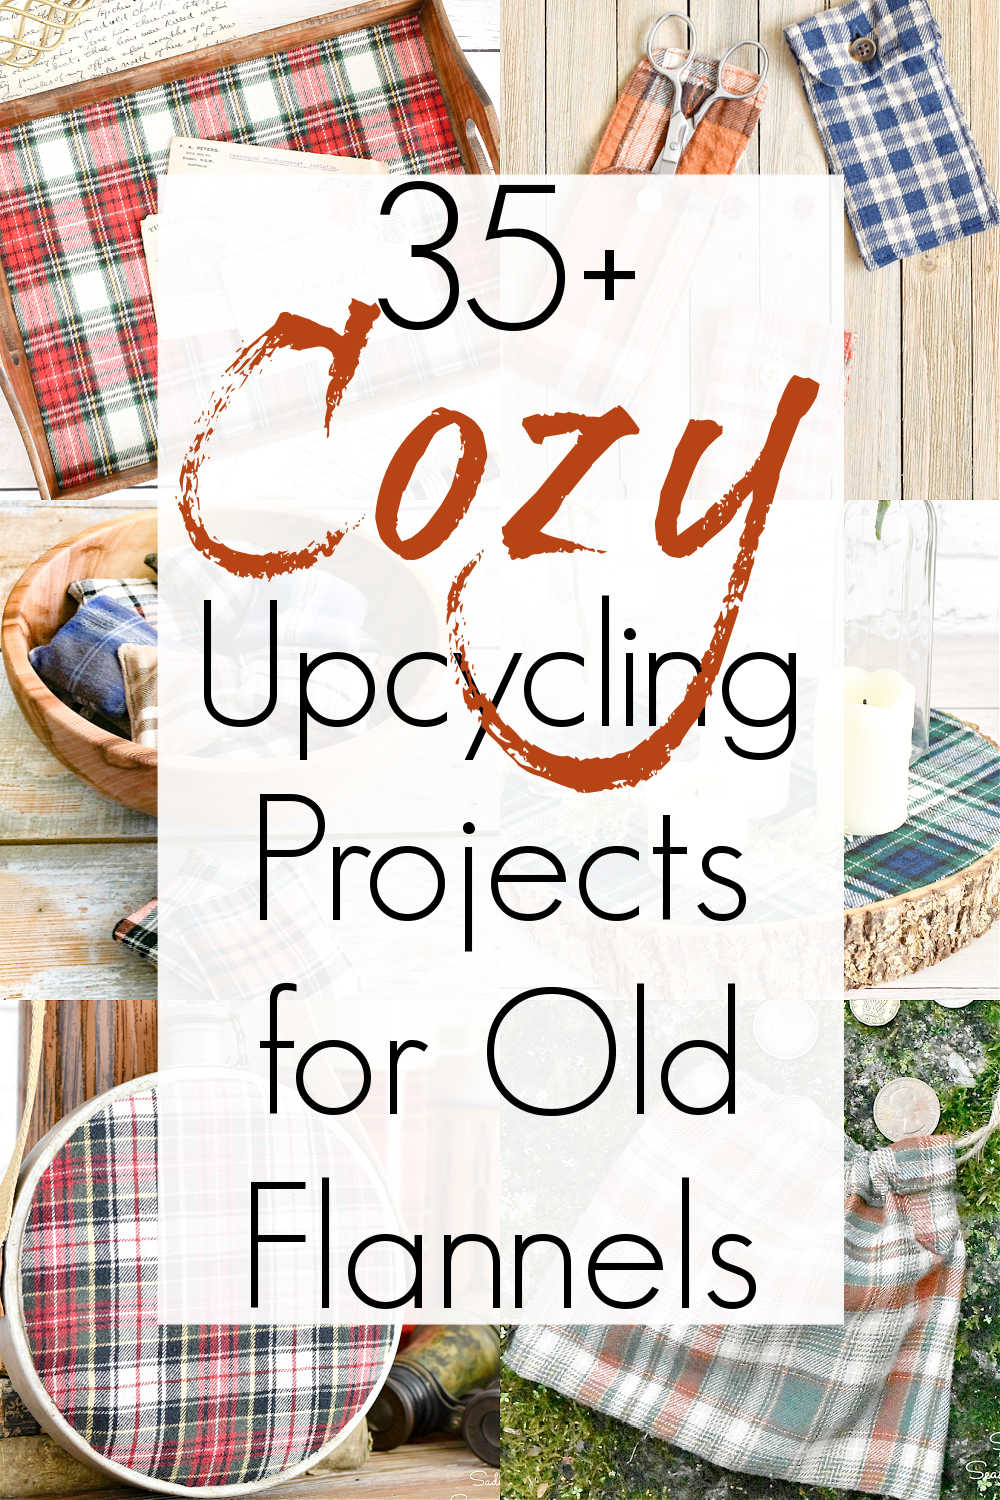 flannel projects for upcycled flannel shirts